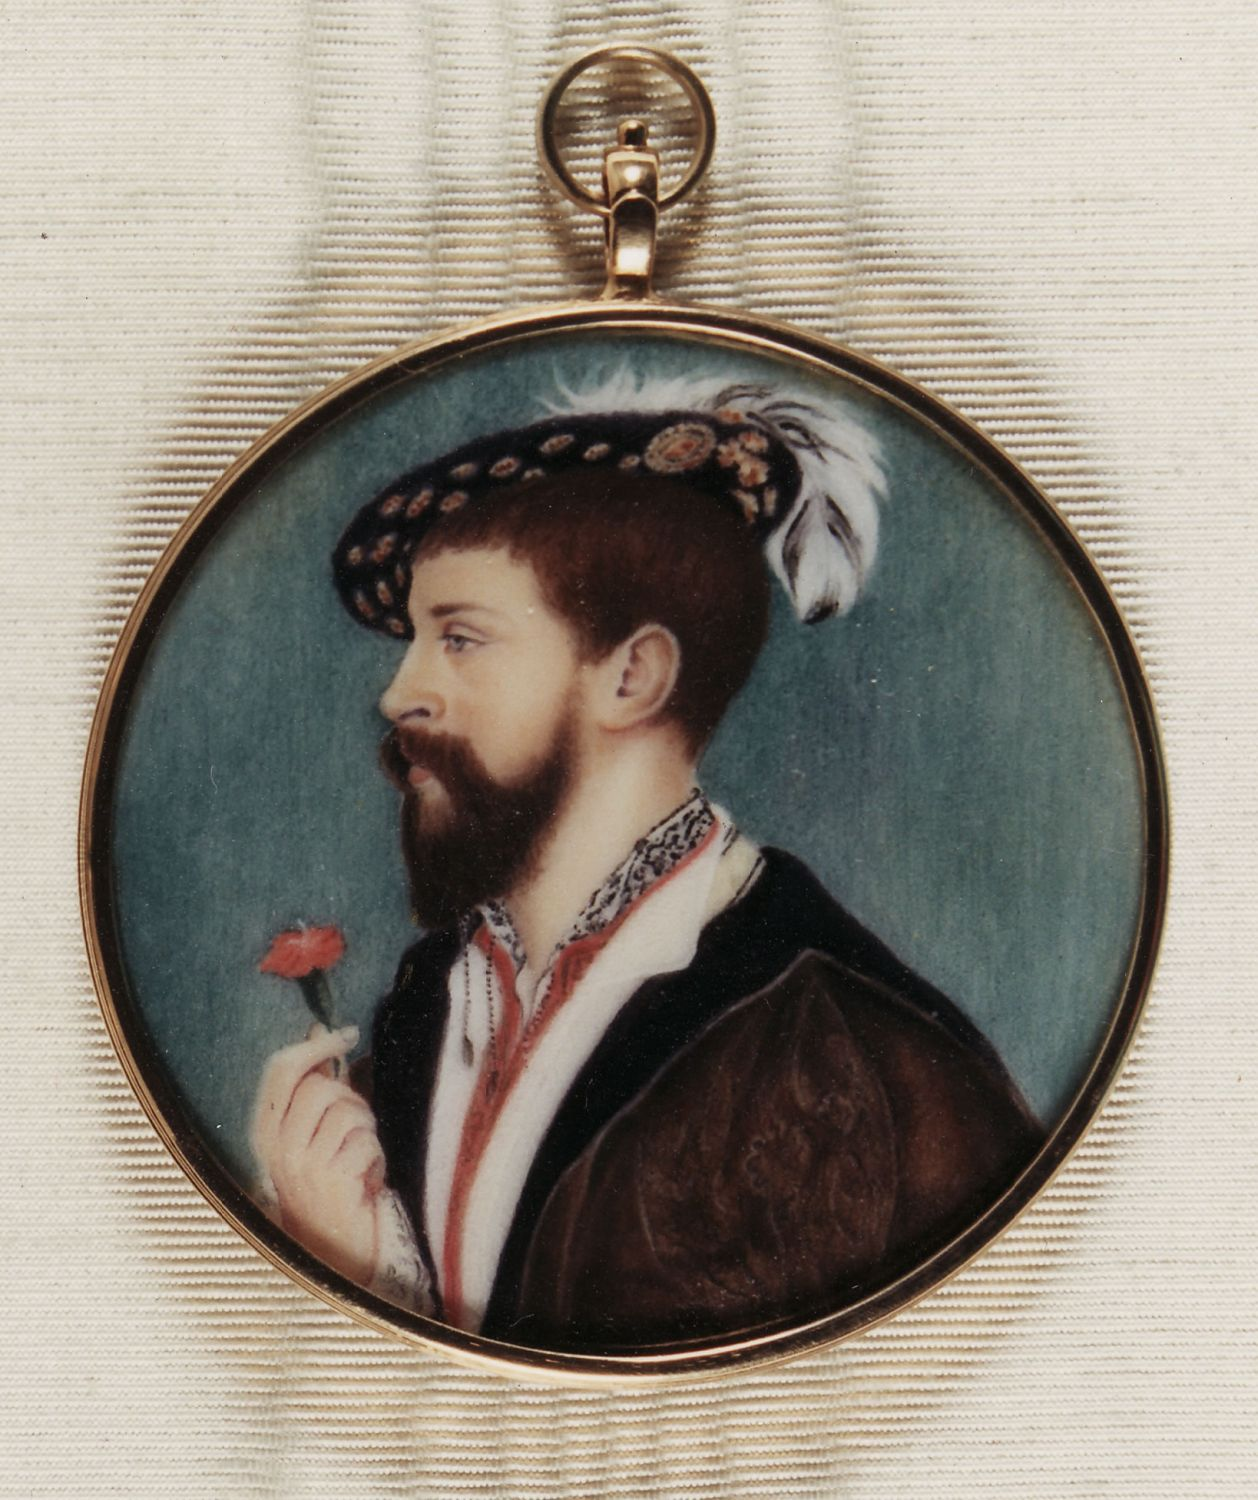 Simon George of Quocote c. 1535 after Holbein